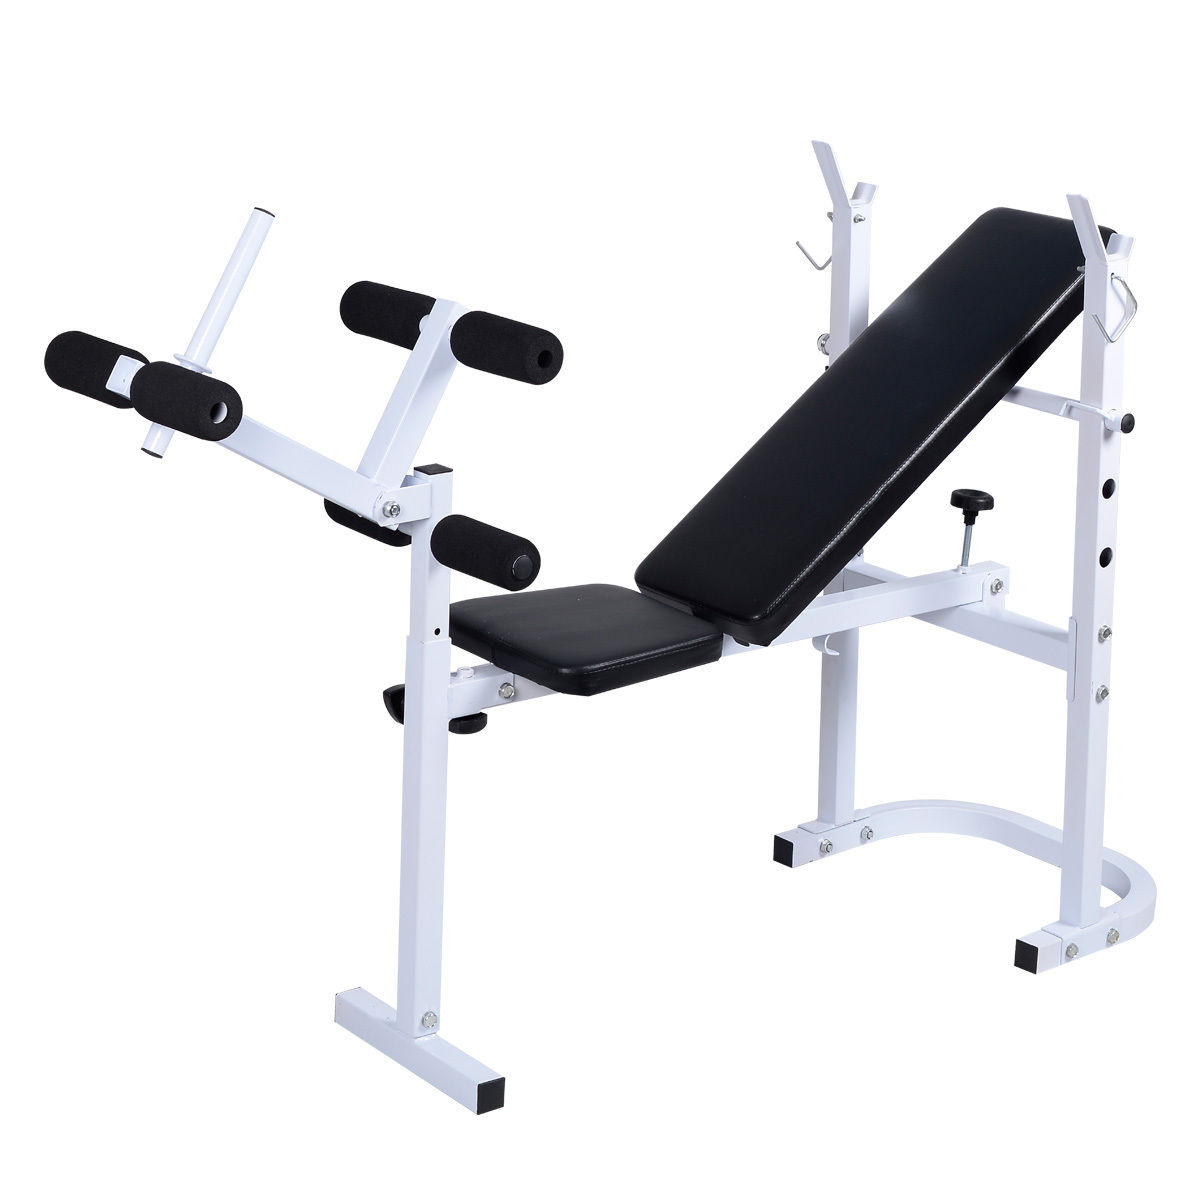 Solid Olympic Folding Incline Lift Workout Bench